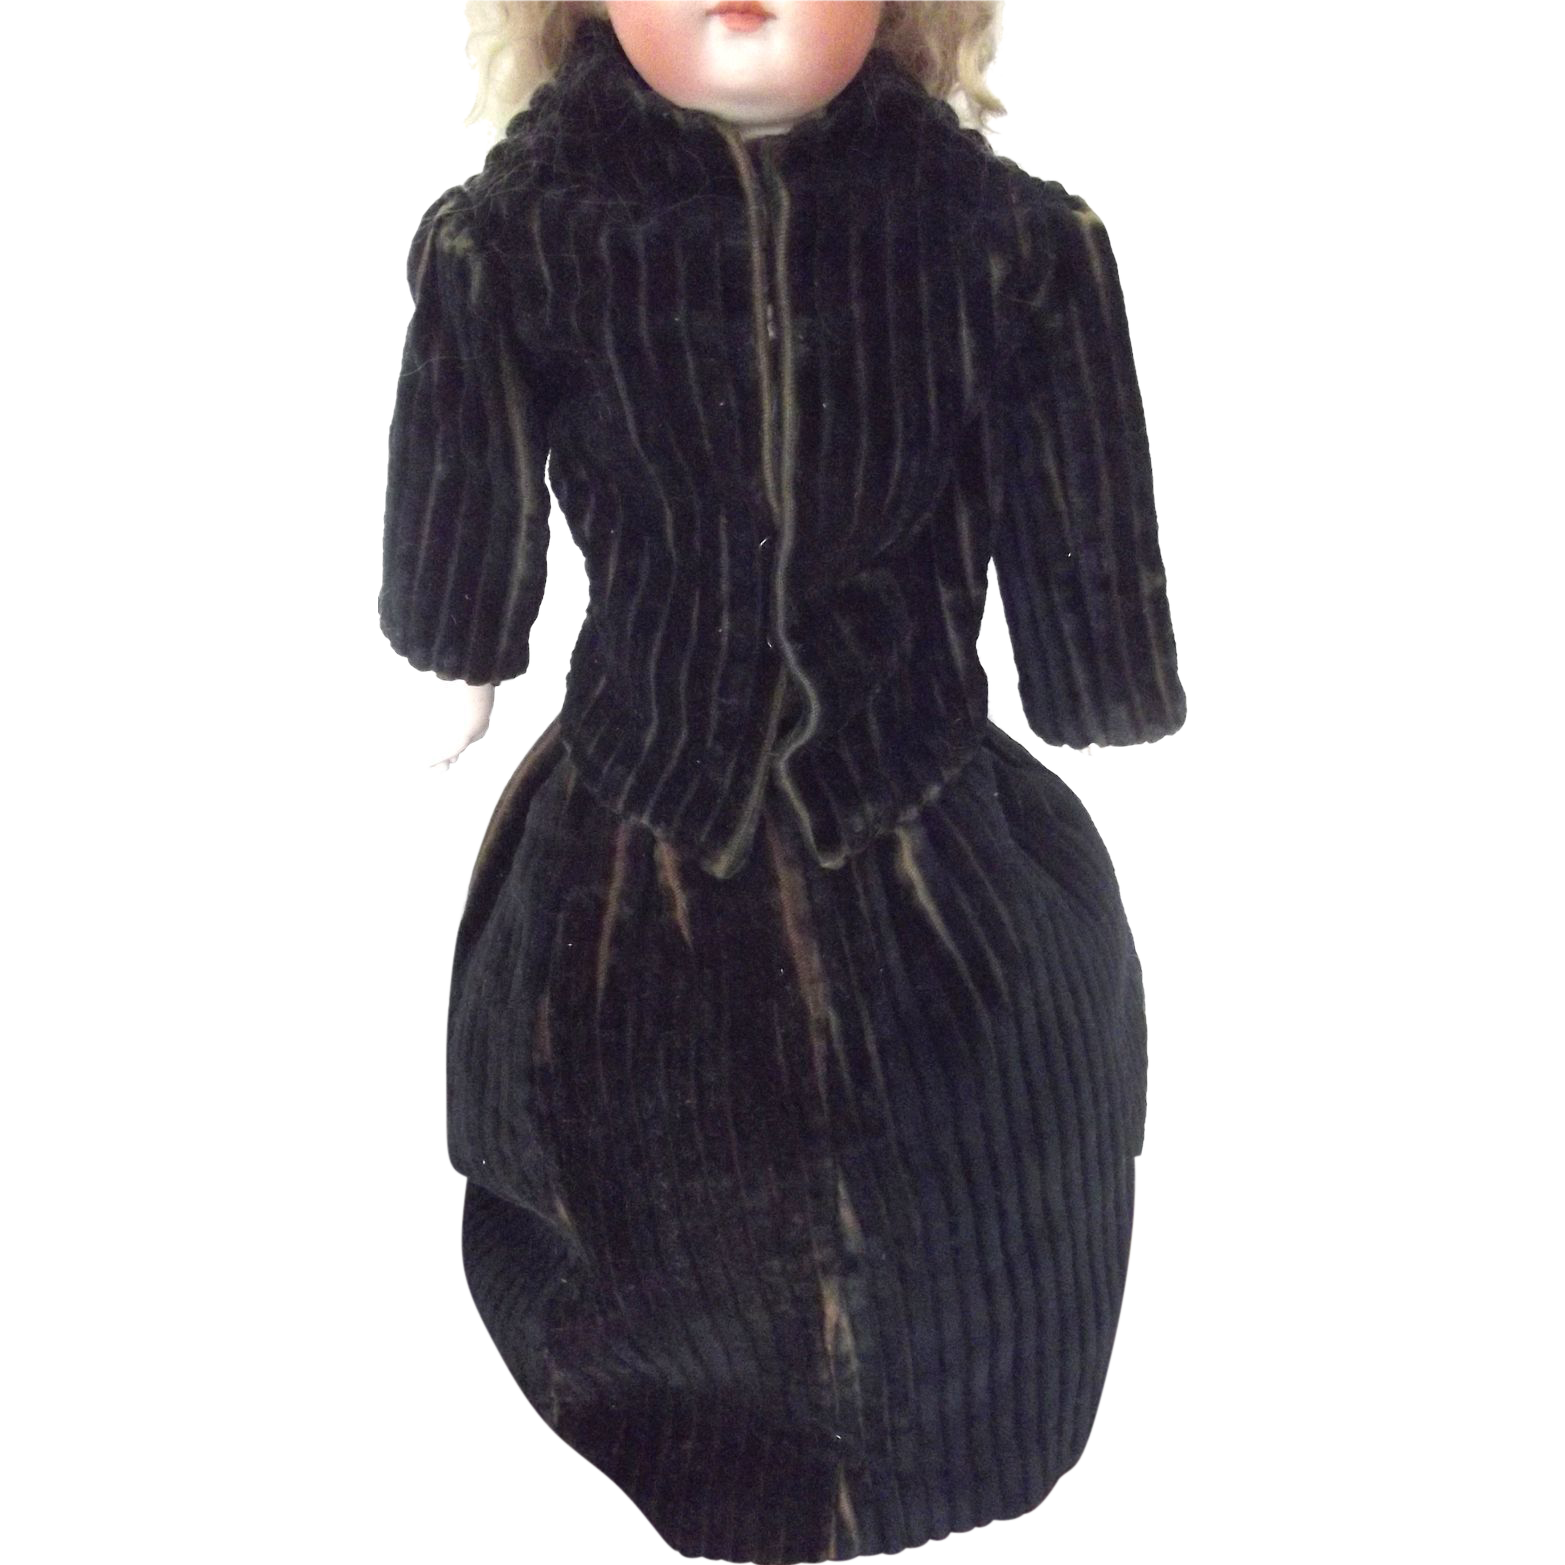 Corduroy Suit From Kid Bodied Doll